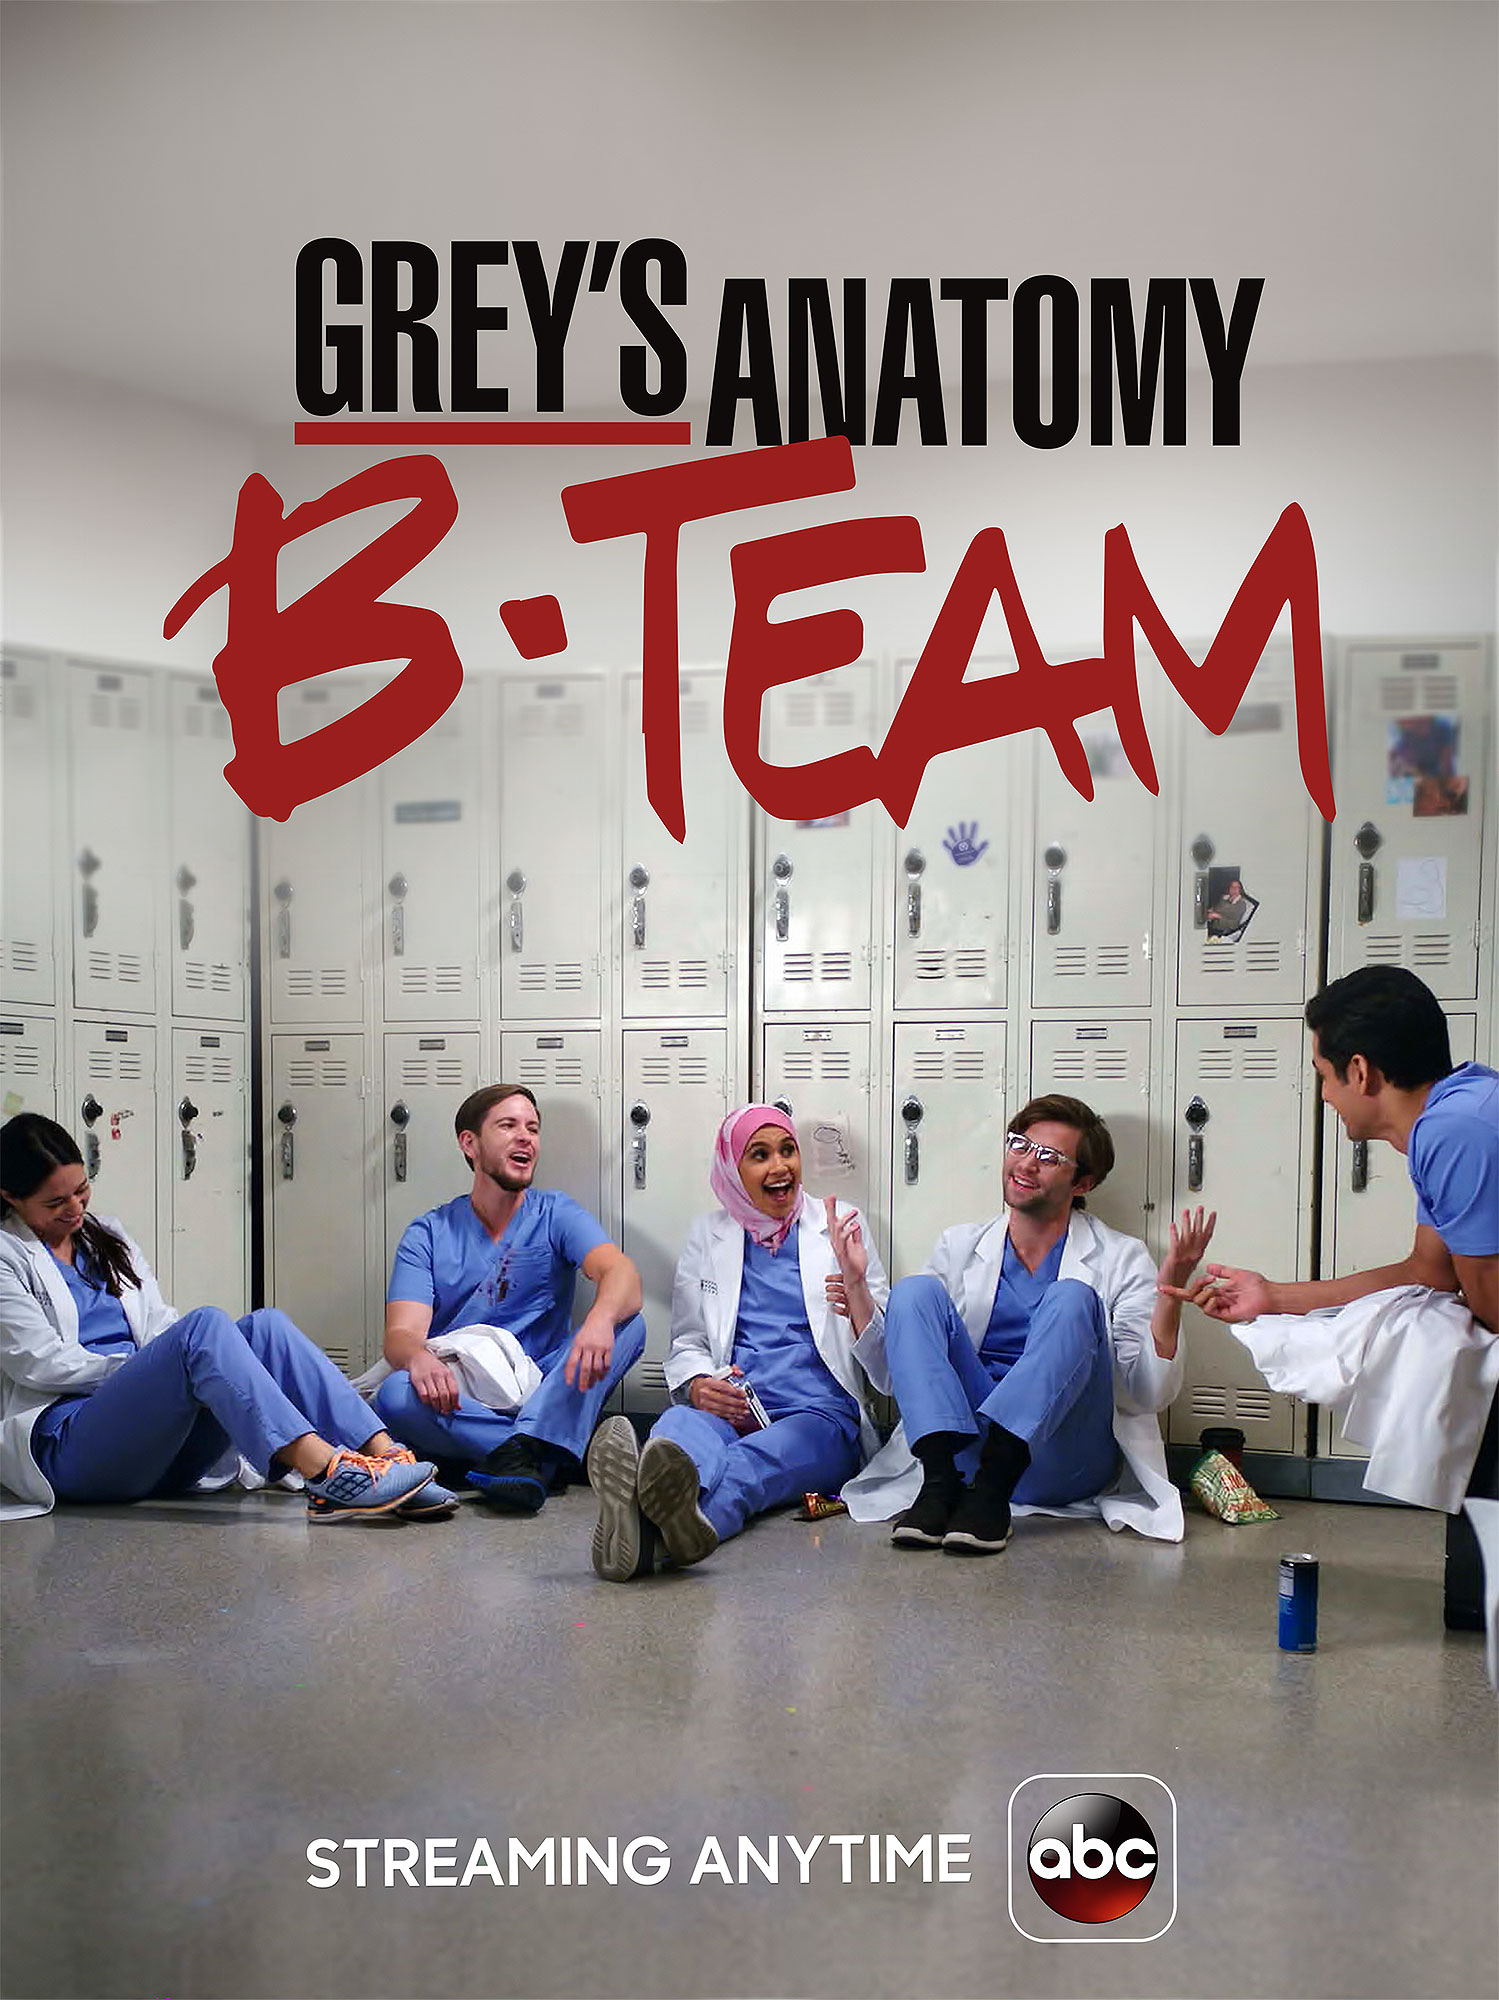 Grey's AnatomyCredit: ABC